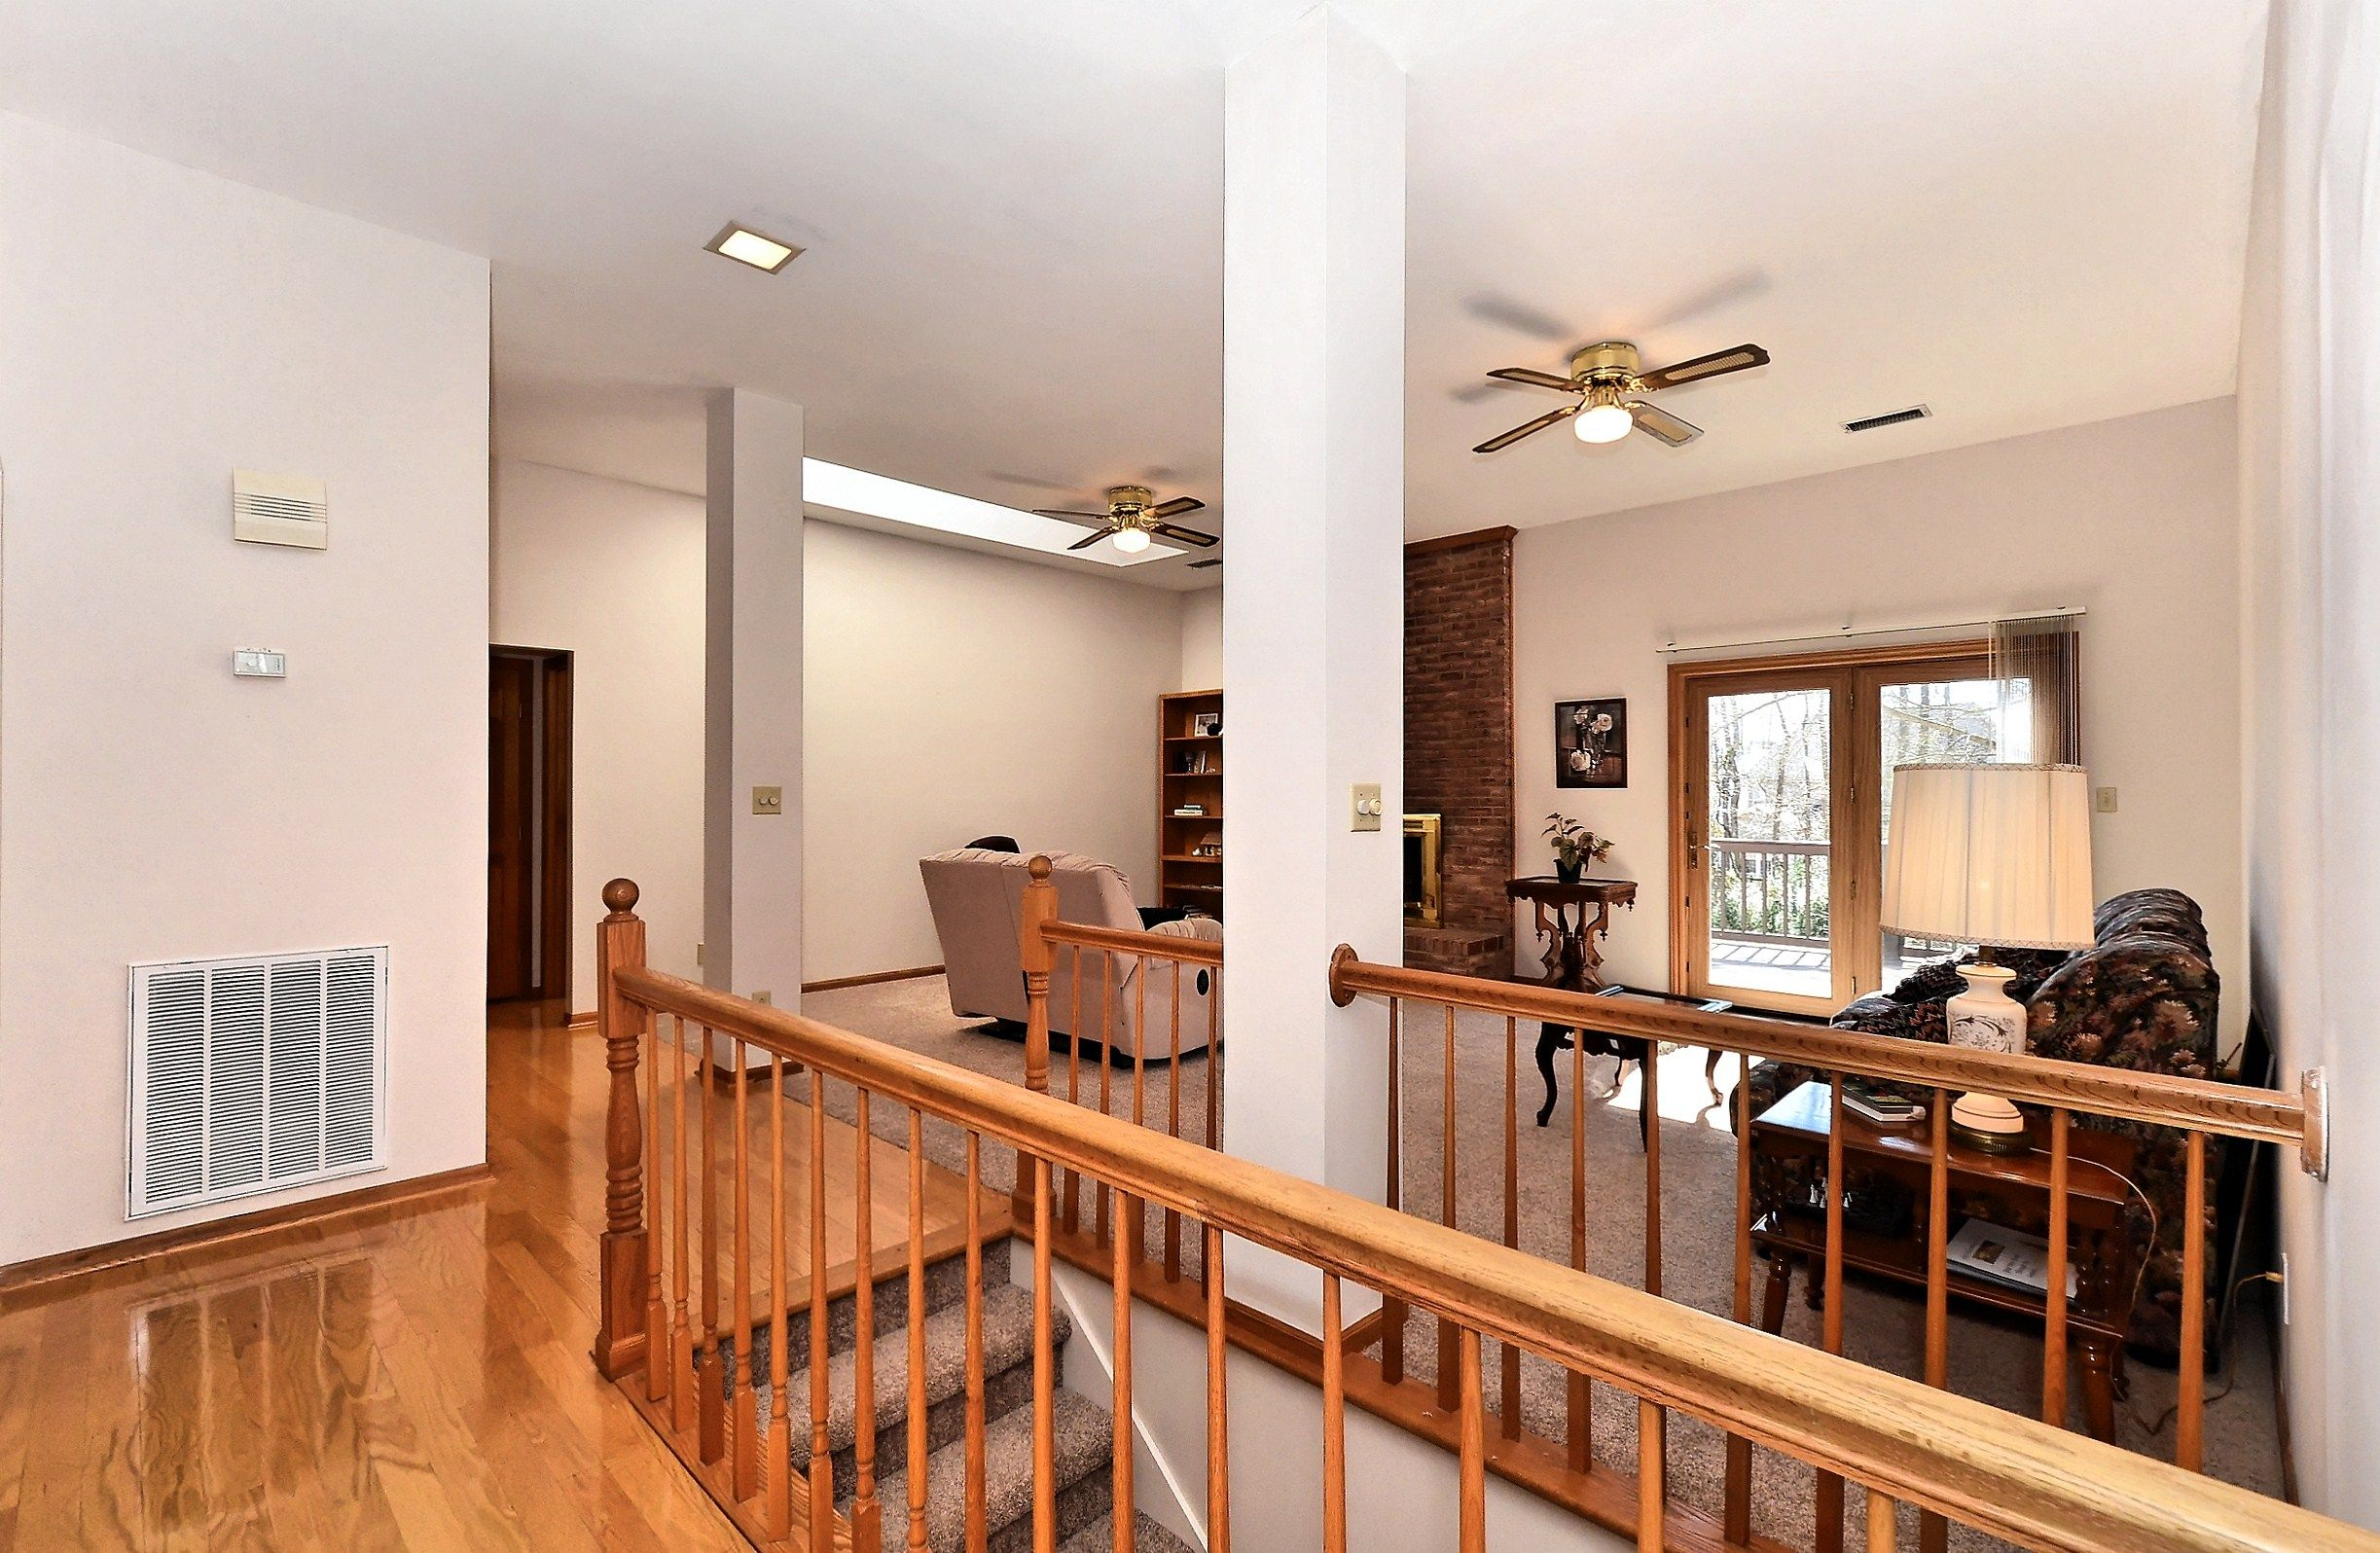 Amazing Opening A Load Bearing Wall Between Kitchen And Living Room Of Or Open Stairway Walls Area Acnn Decor